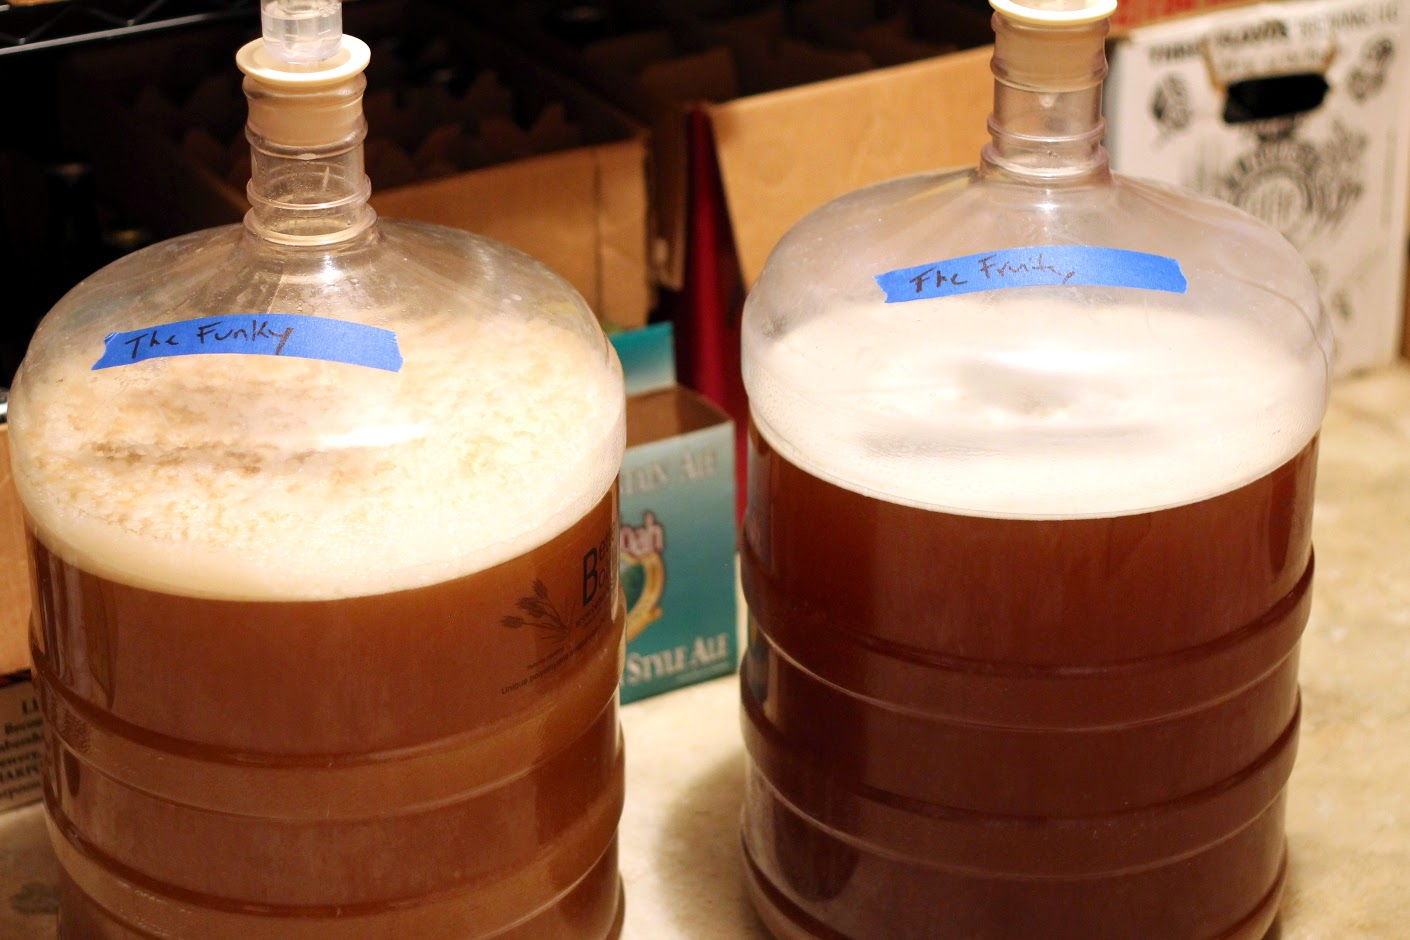 The start of the primary fermentation.